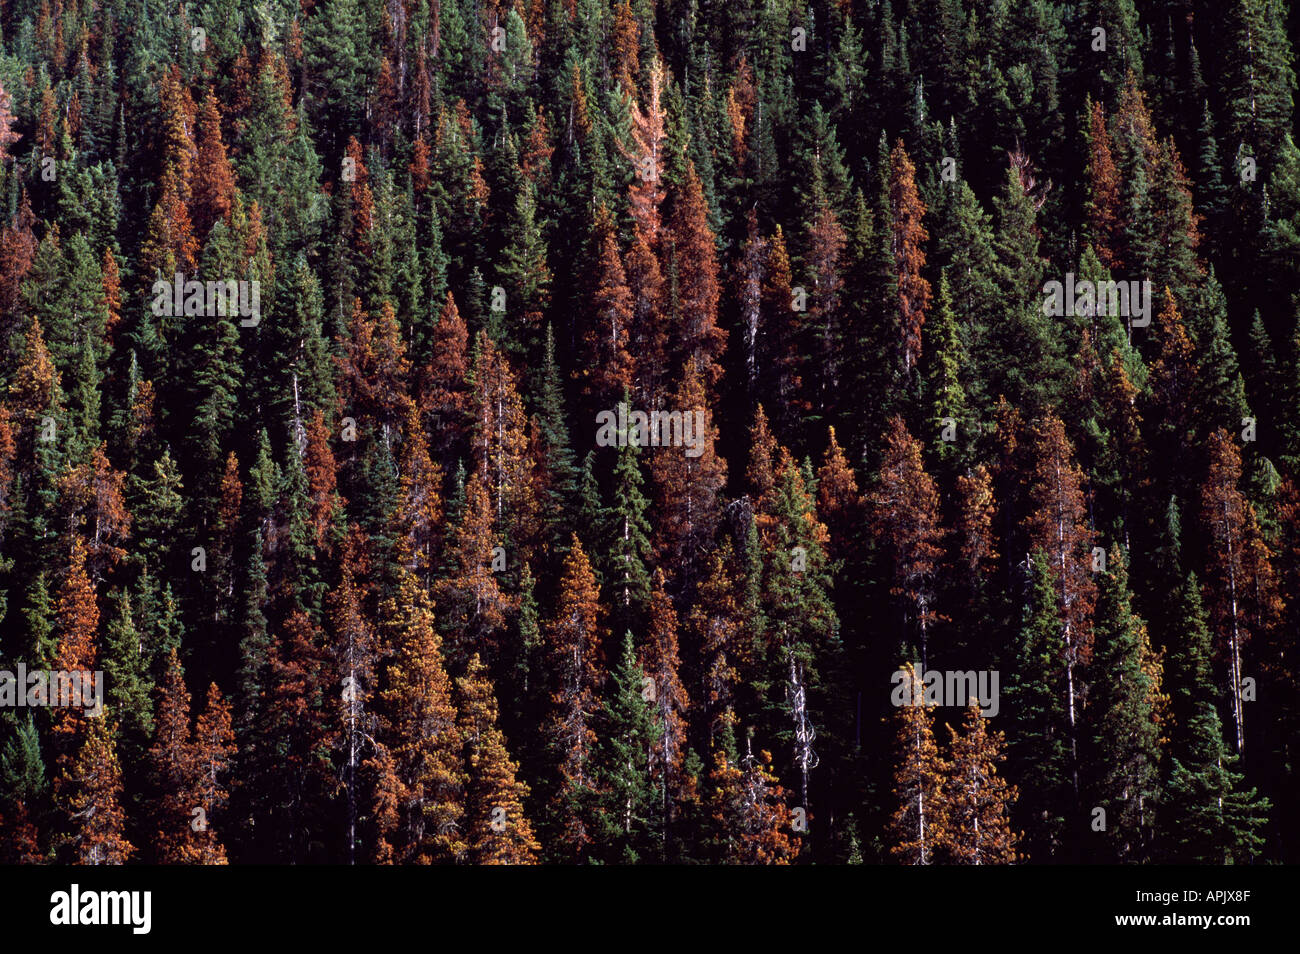 Dying Lodgepole Pine Trees (Pinus contorta) in Forest infested by Mountain Pine Beetle Infestation, BC, British Columbia, Canada - Stock Image